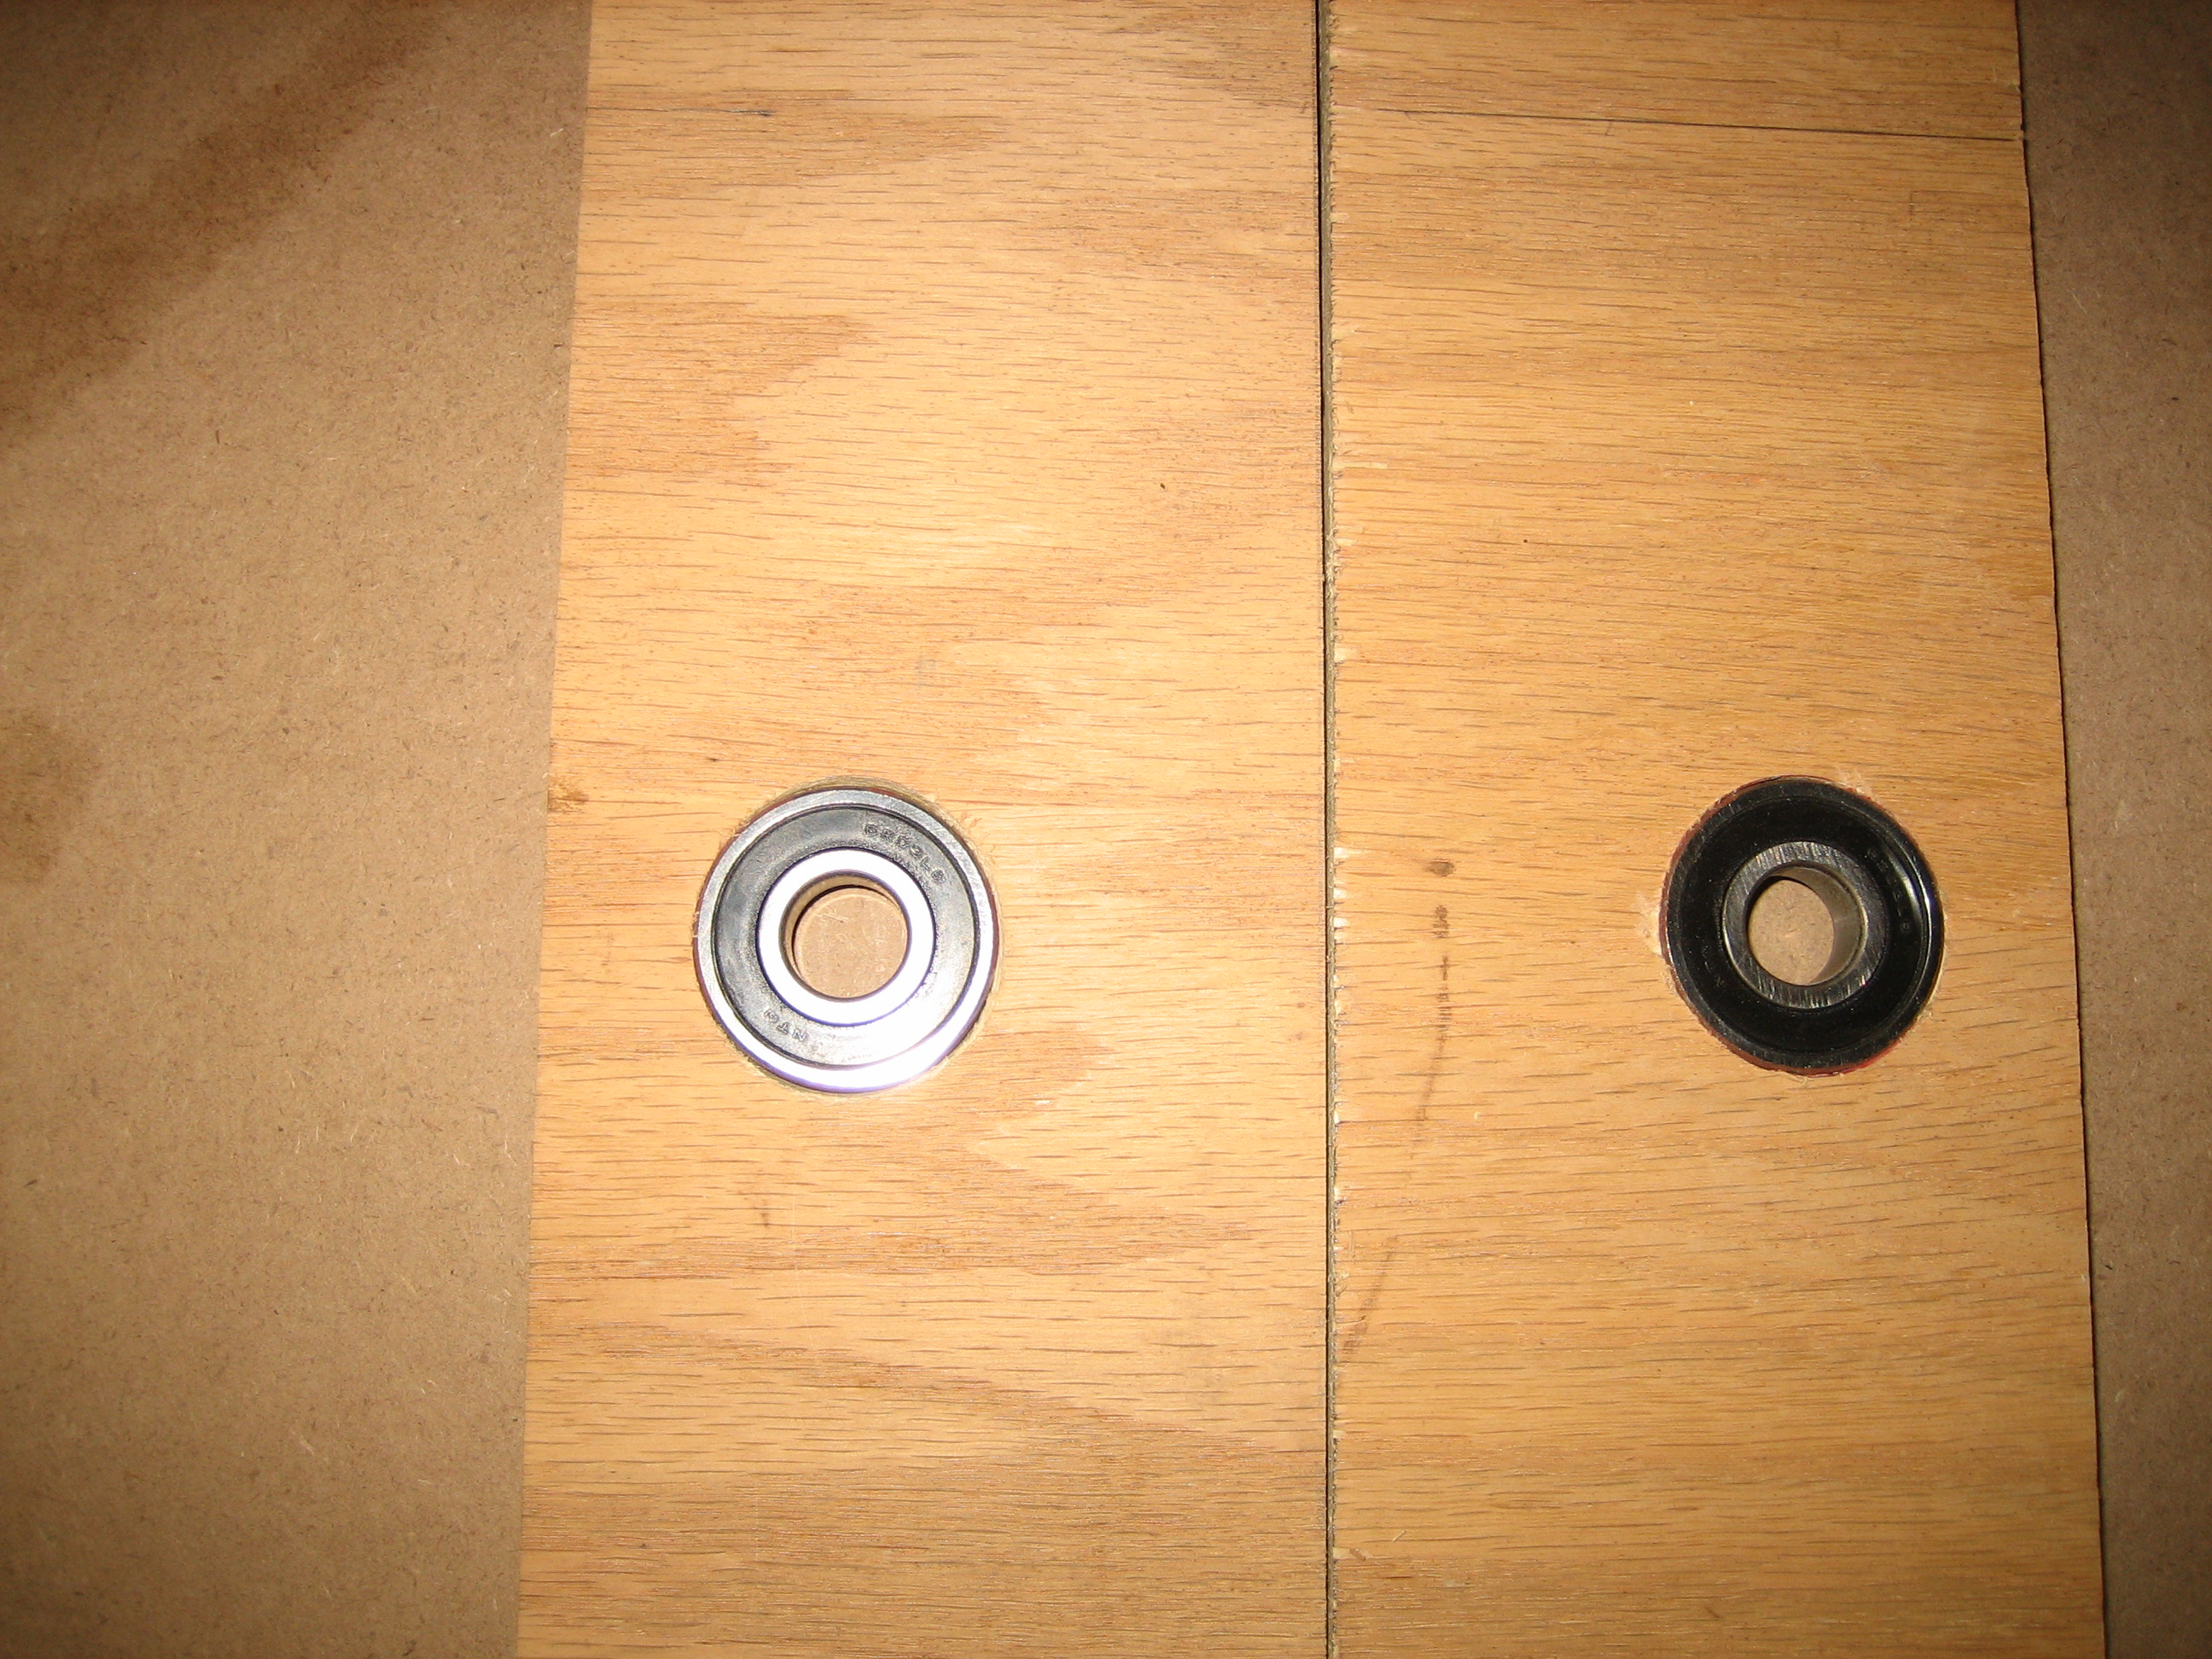 Picture of The Bearing Supports & Axle Shafts